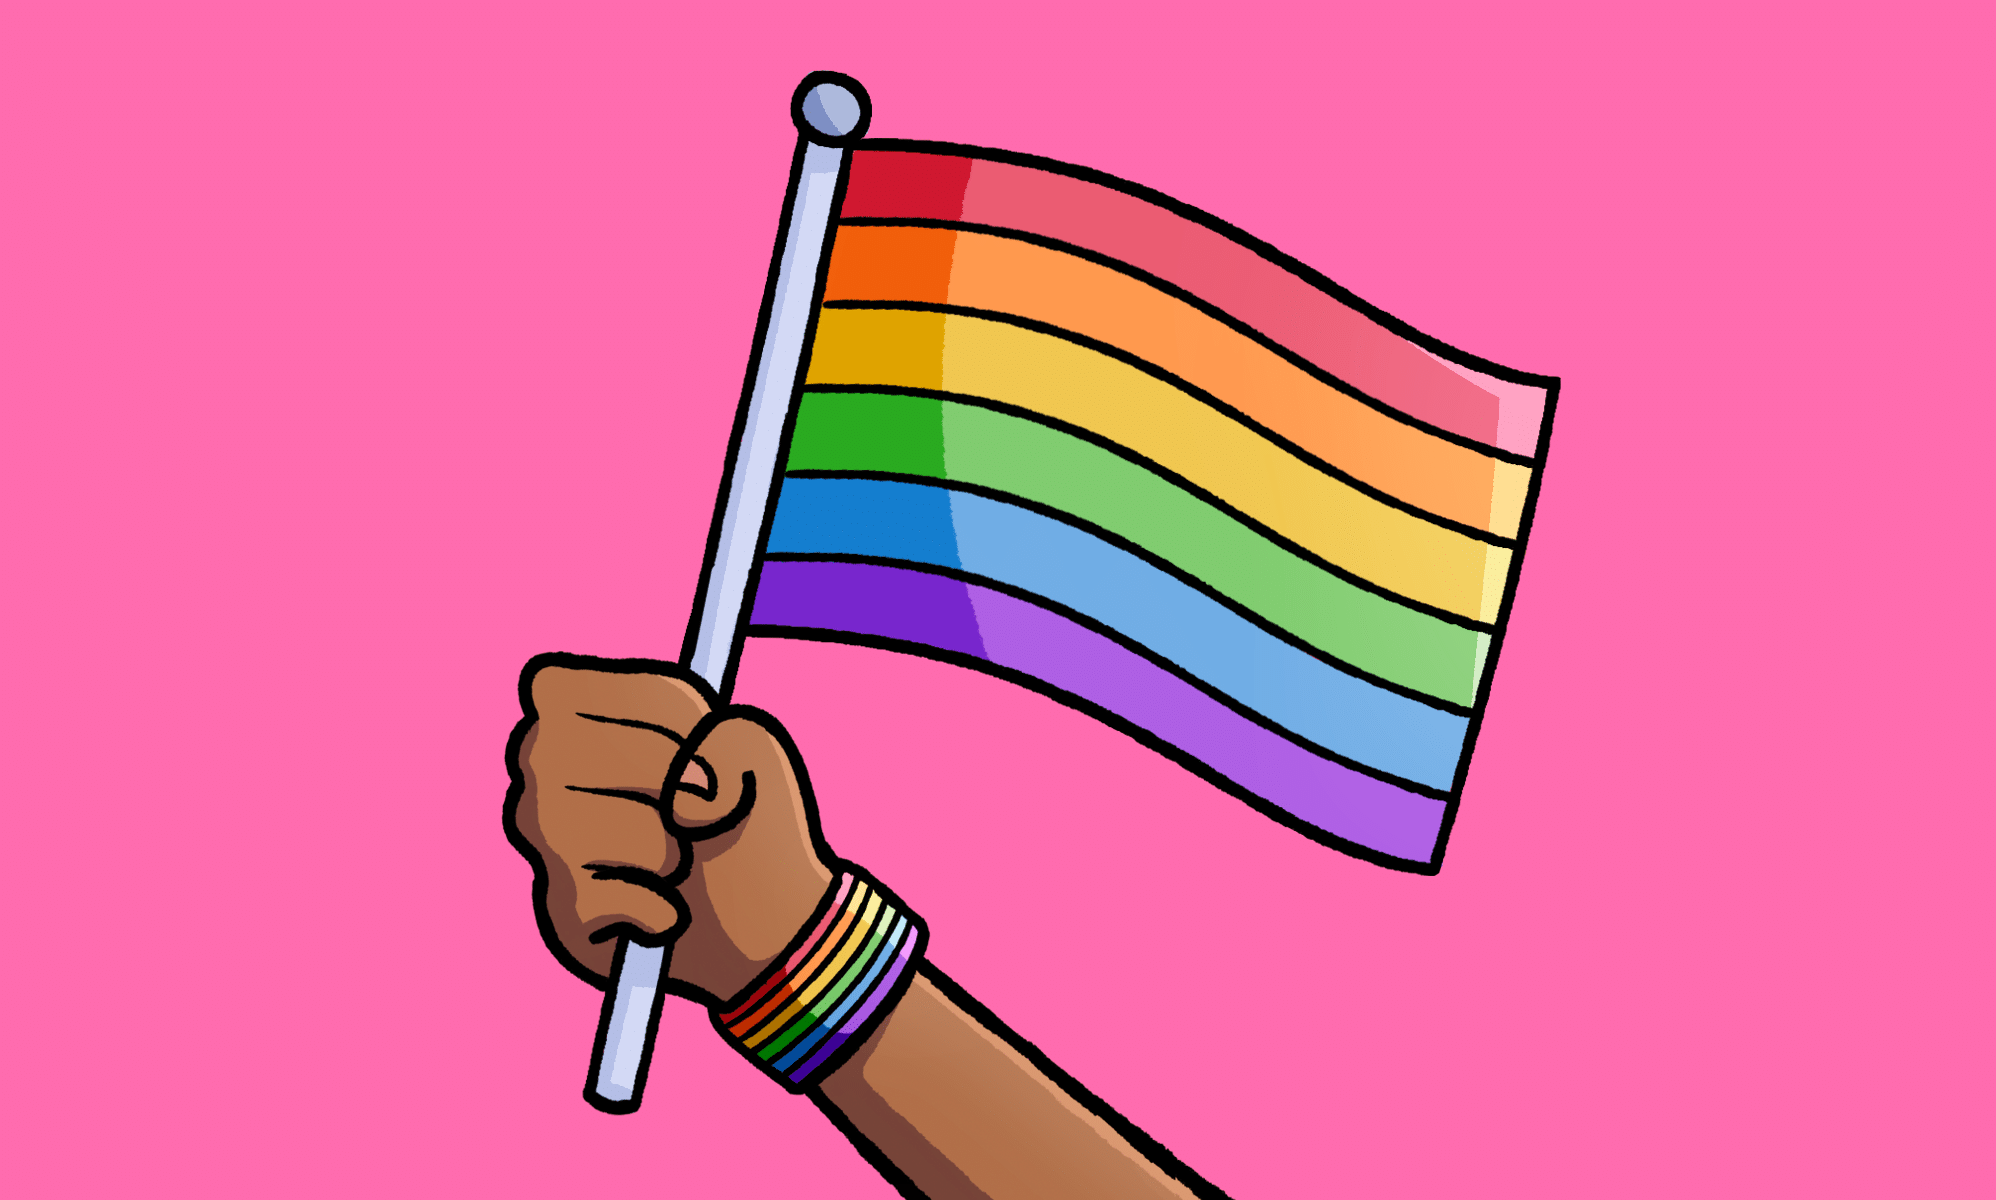 California is the first state to teach LGBT history in schools